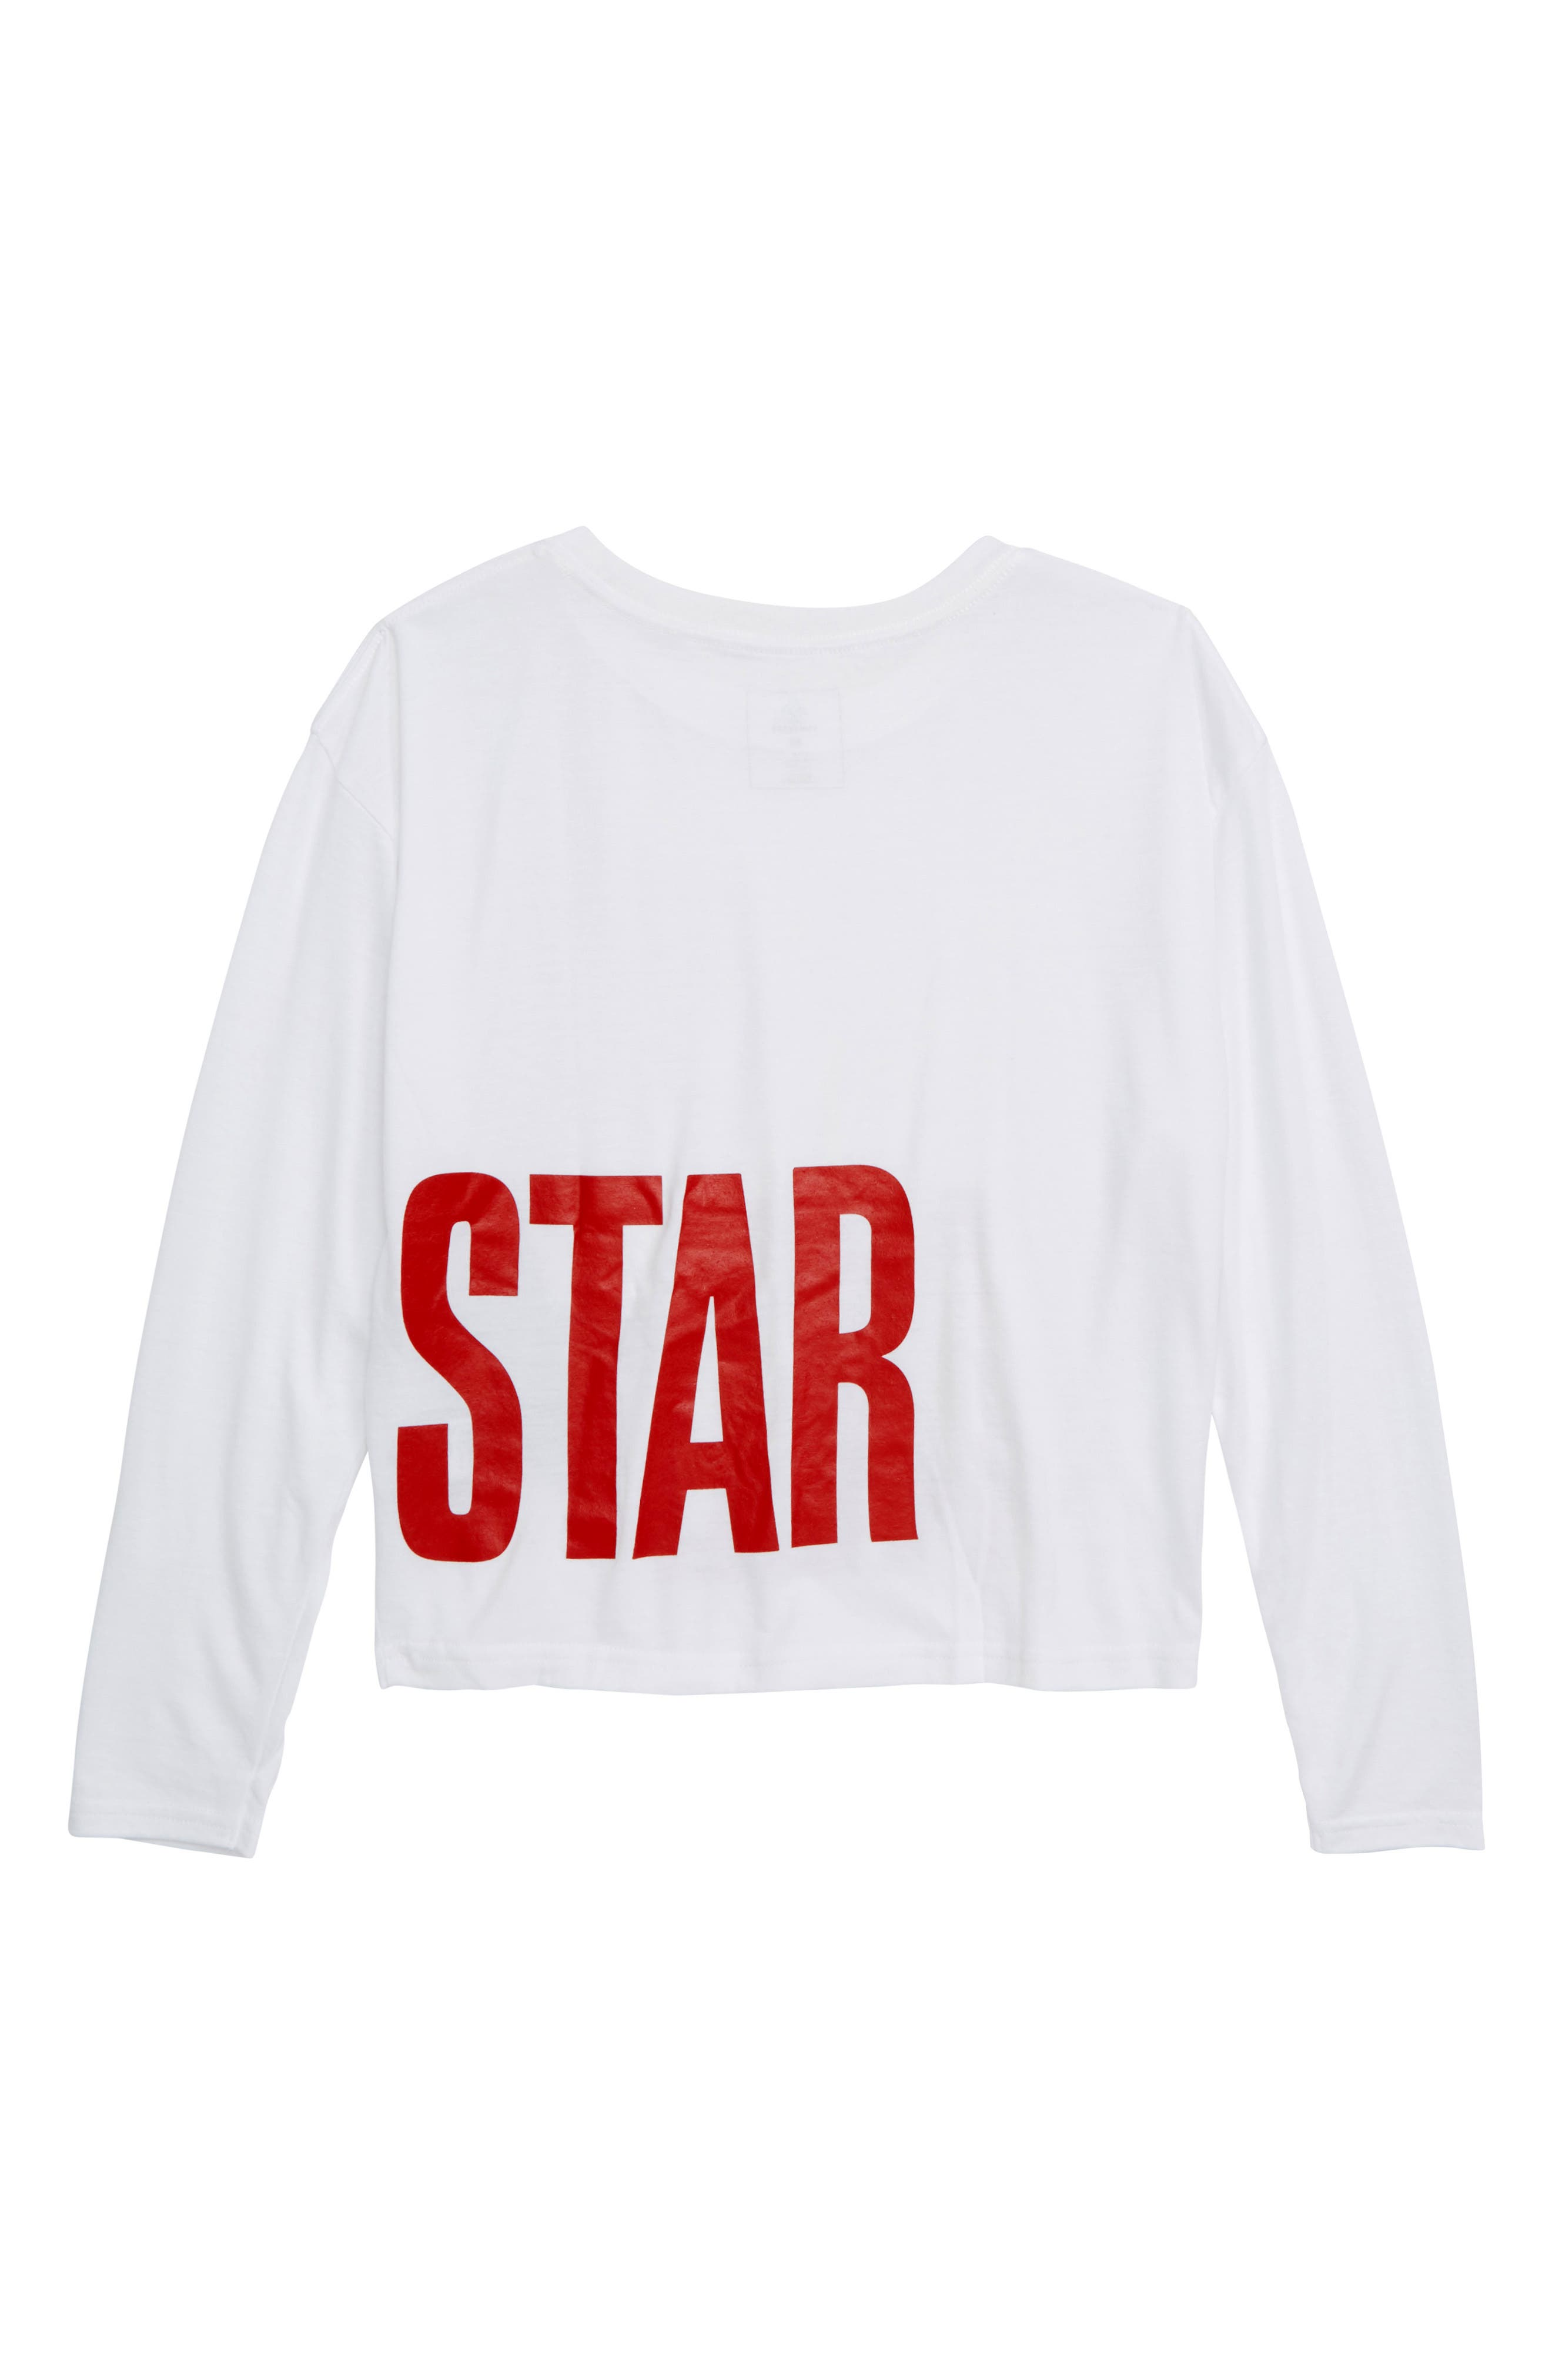 All Star<sup>®</sup> Oversize Long Sleeve Tee,                             Alternate thumbnail 2, color,                             WHITE